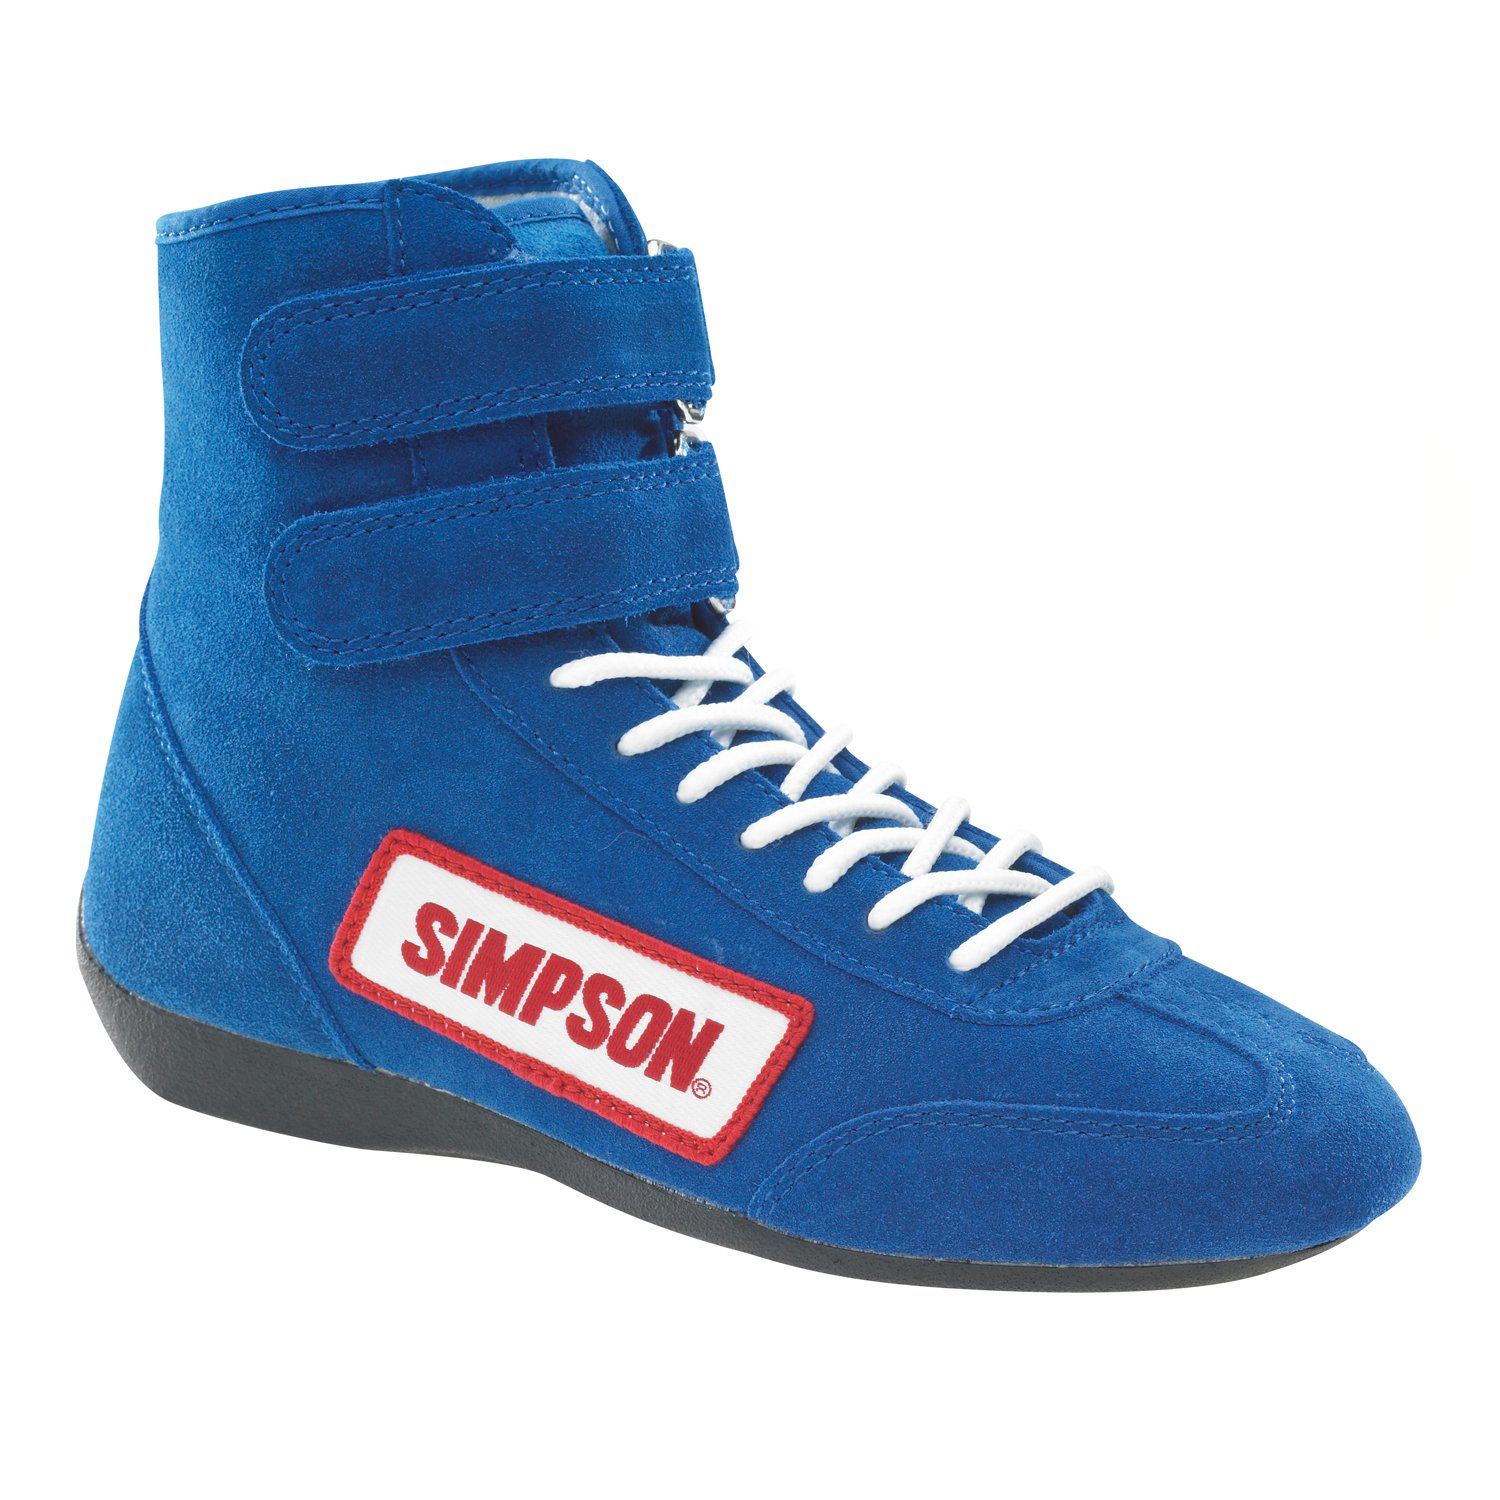 Simpson Racing 28800BL The Hightop Blue Size 8 SFI Approved Driving Shoes